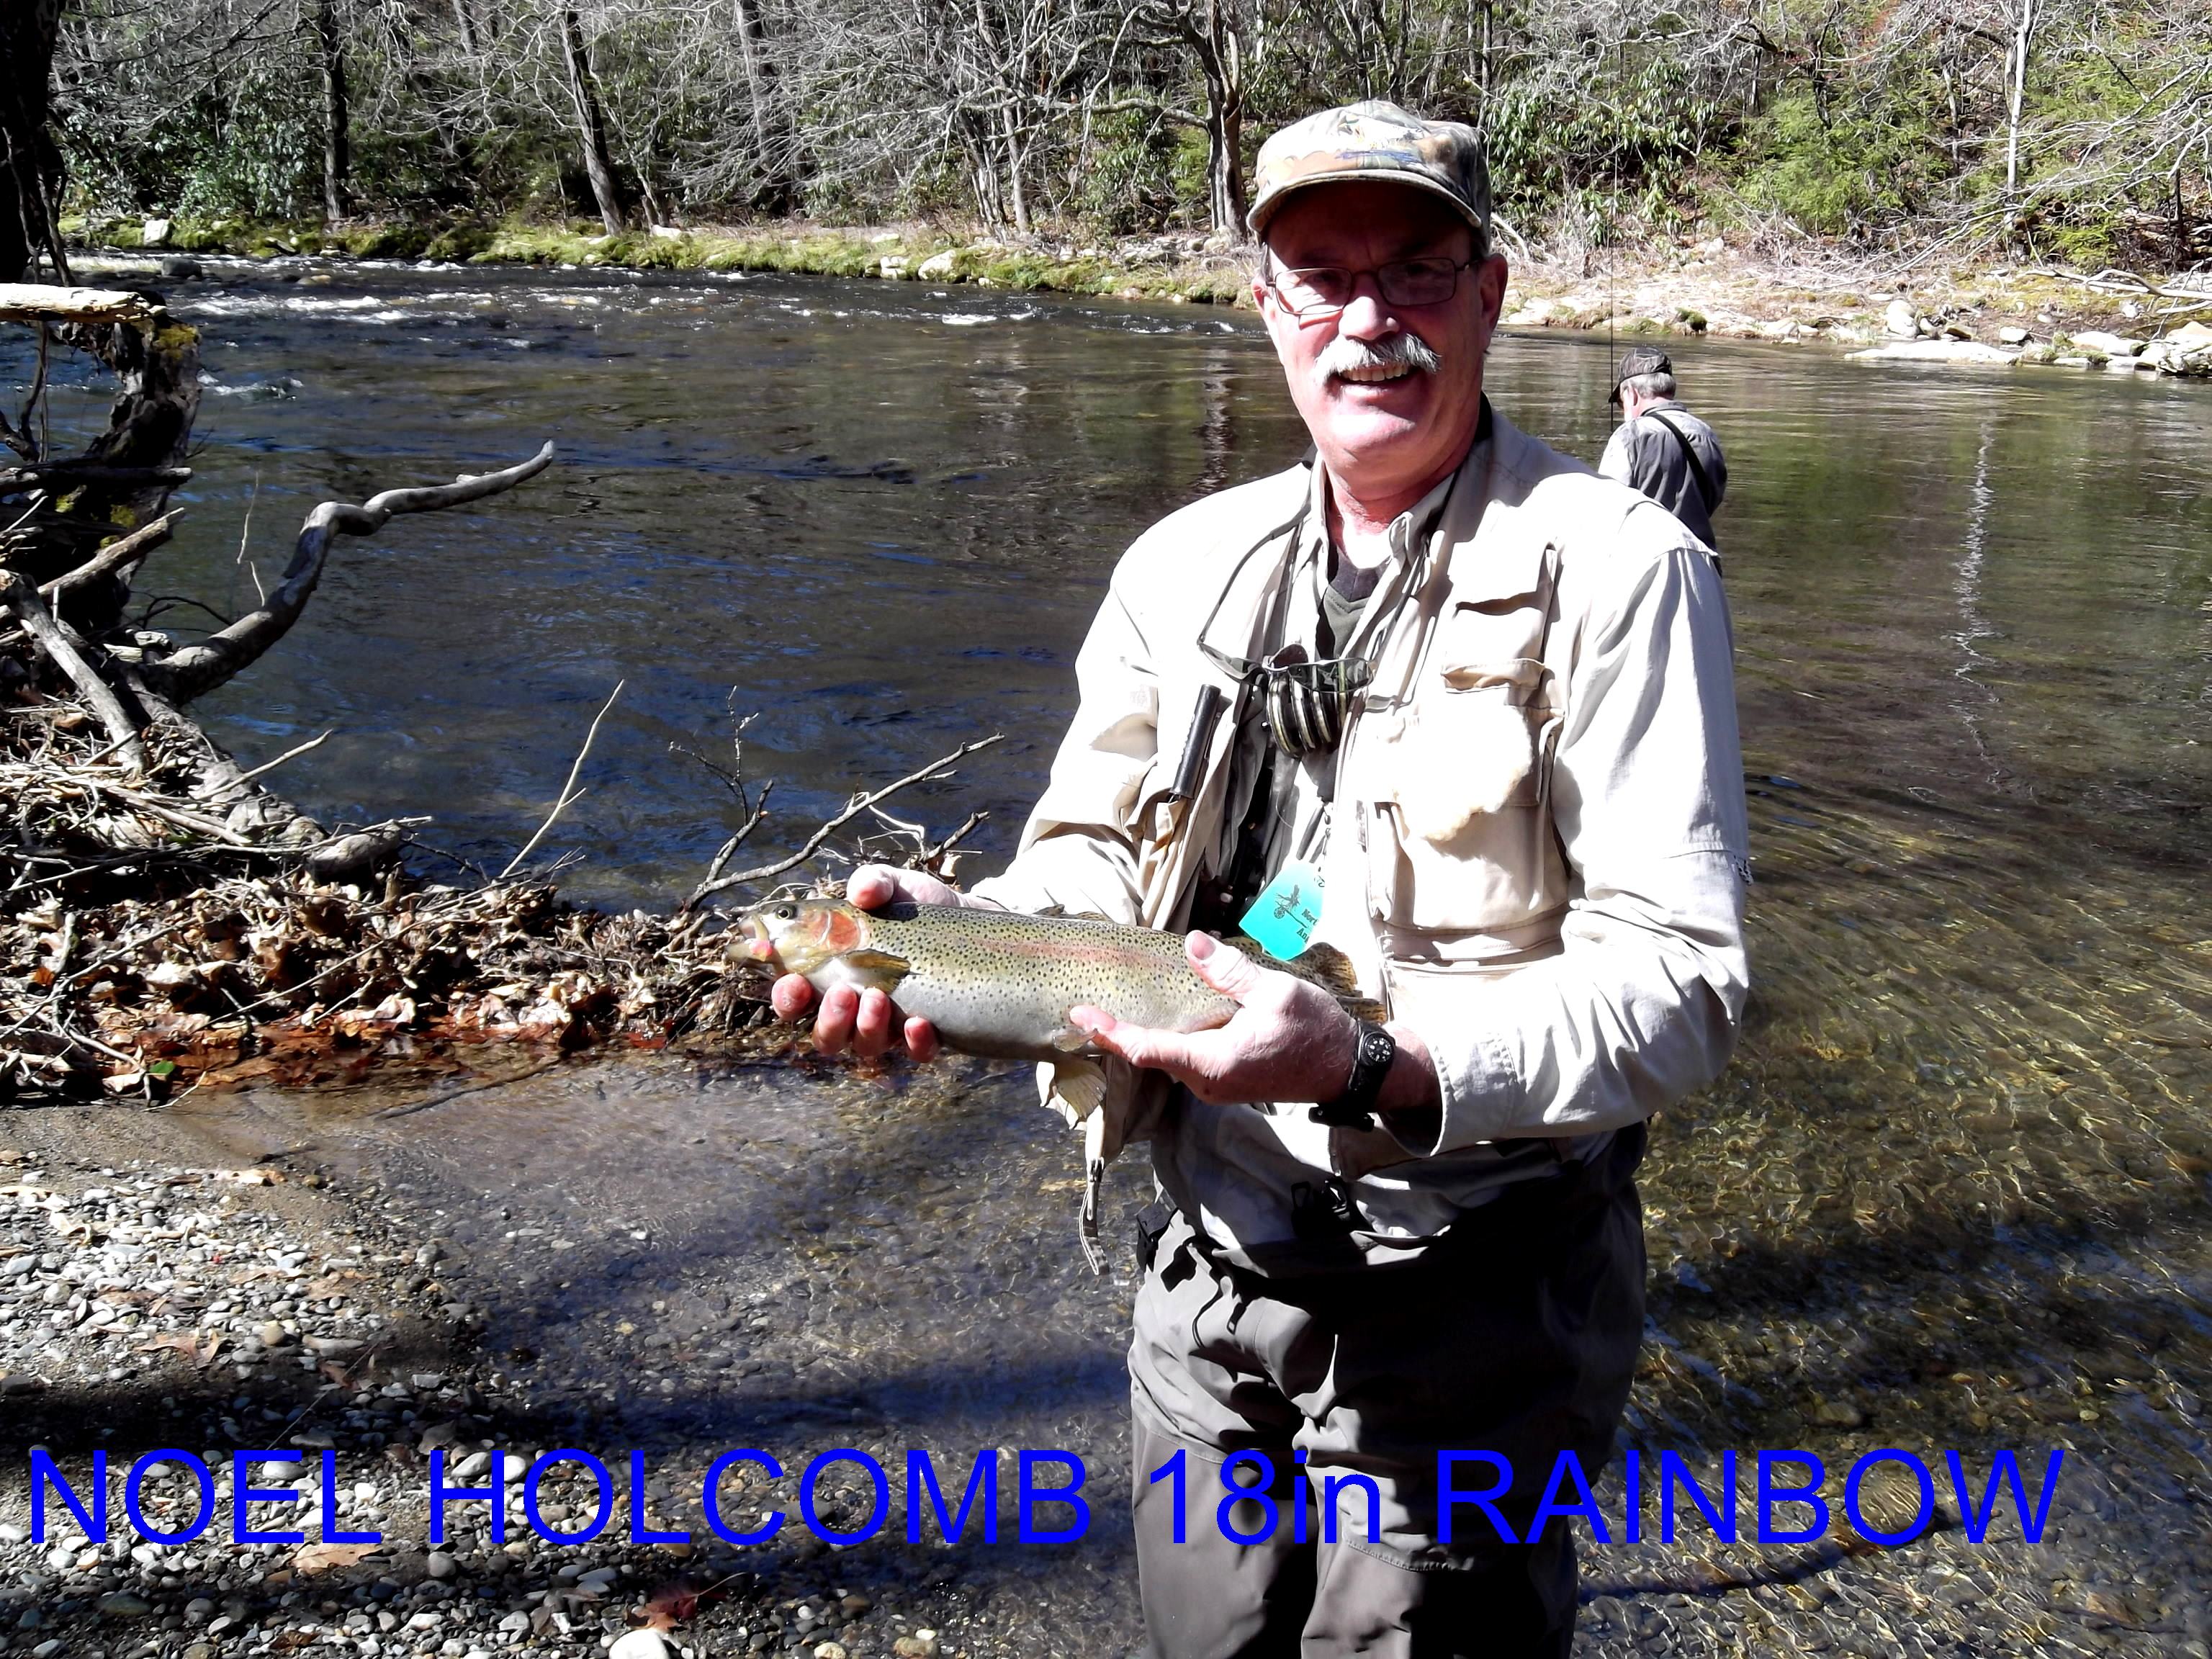 Cherokee nc fishing trips coosa valley chapter 519 for Fishing vacation packages